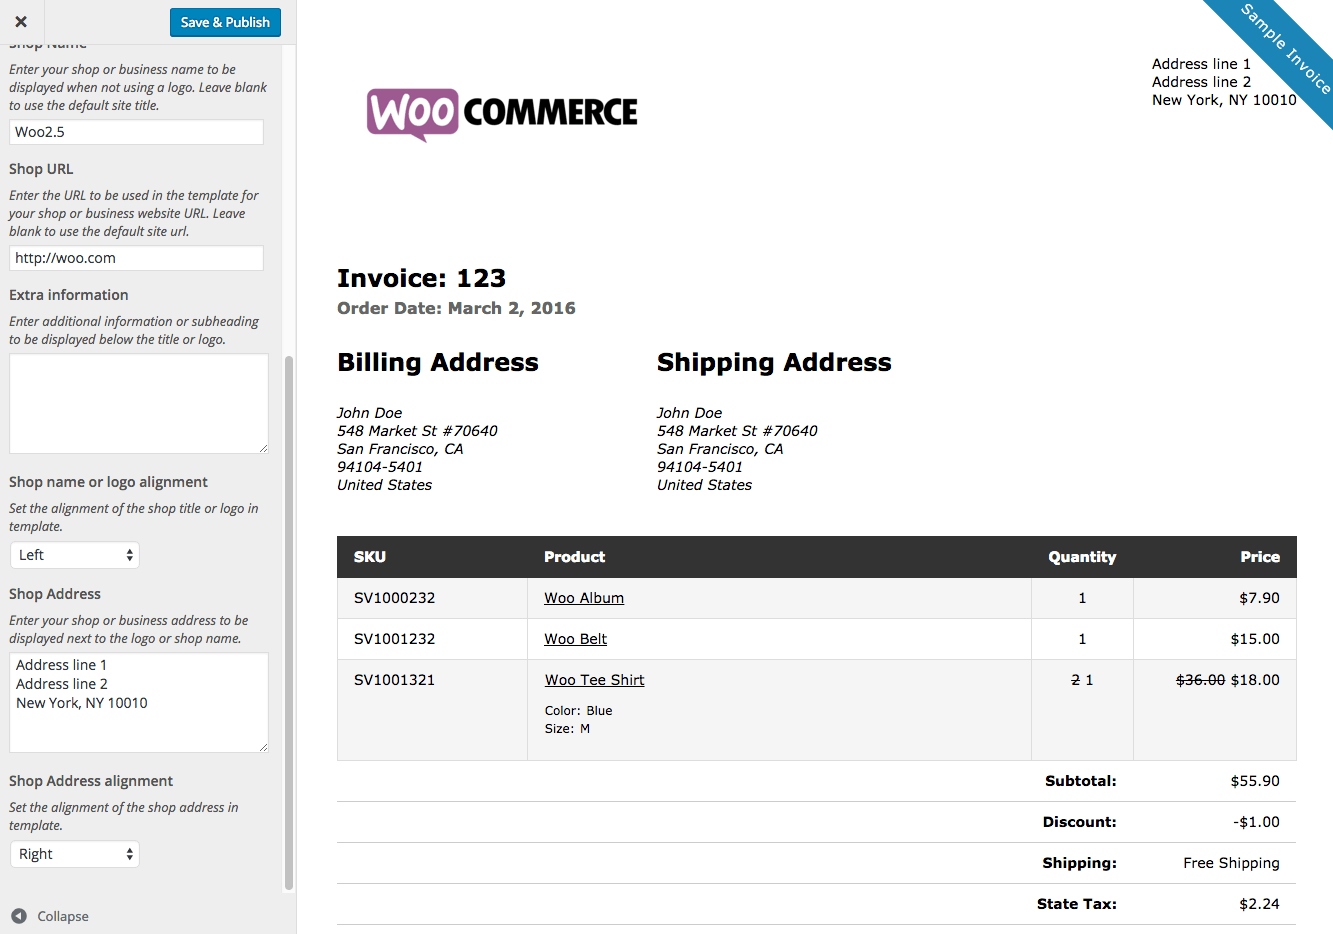 Homewouldcom  Sweet Print Invoices Amp Packing Lists  Woocommerce With Fair Woocommerce Print Invoices  Packing Lists Customizer With Captivating Example Proforma Invoice Also What Is Invoice Discounting In Addition Copy Of A Blank Invoice And Create Your Own Invoice Template As Well As Invoice For Excel Additionally Simply Invoices From Woocommercecom With Homewouldcom  Fair Print Invoices Amp Packing Lists  Woocommerce With Captivating Woocommerce Print Invoices  Packing Lists Customizer And Sweet Example Proforma Invoice Also What Is Invoice Discounting In Addition Copy Of A Blank Invoice From Woocommercecom